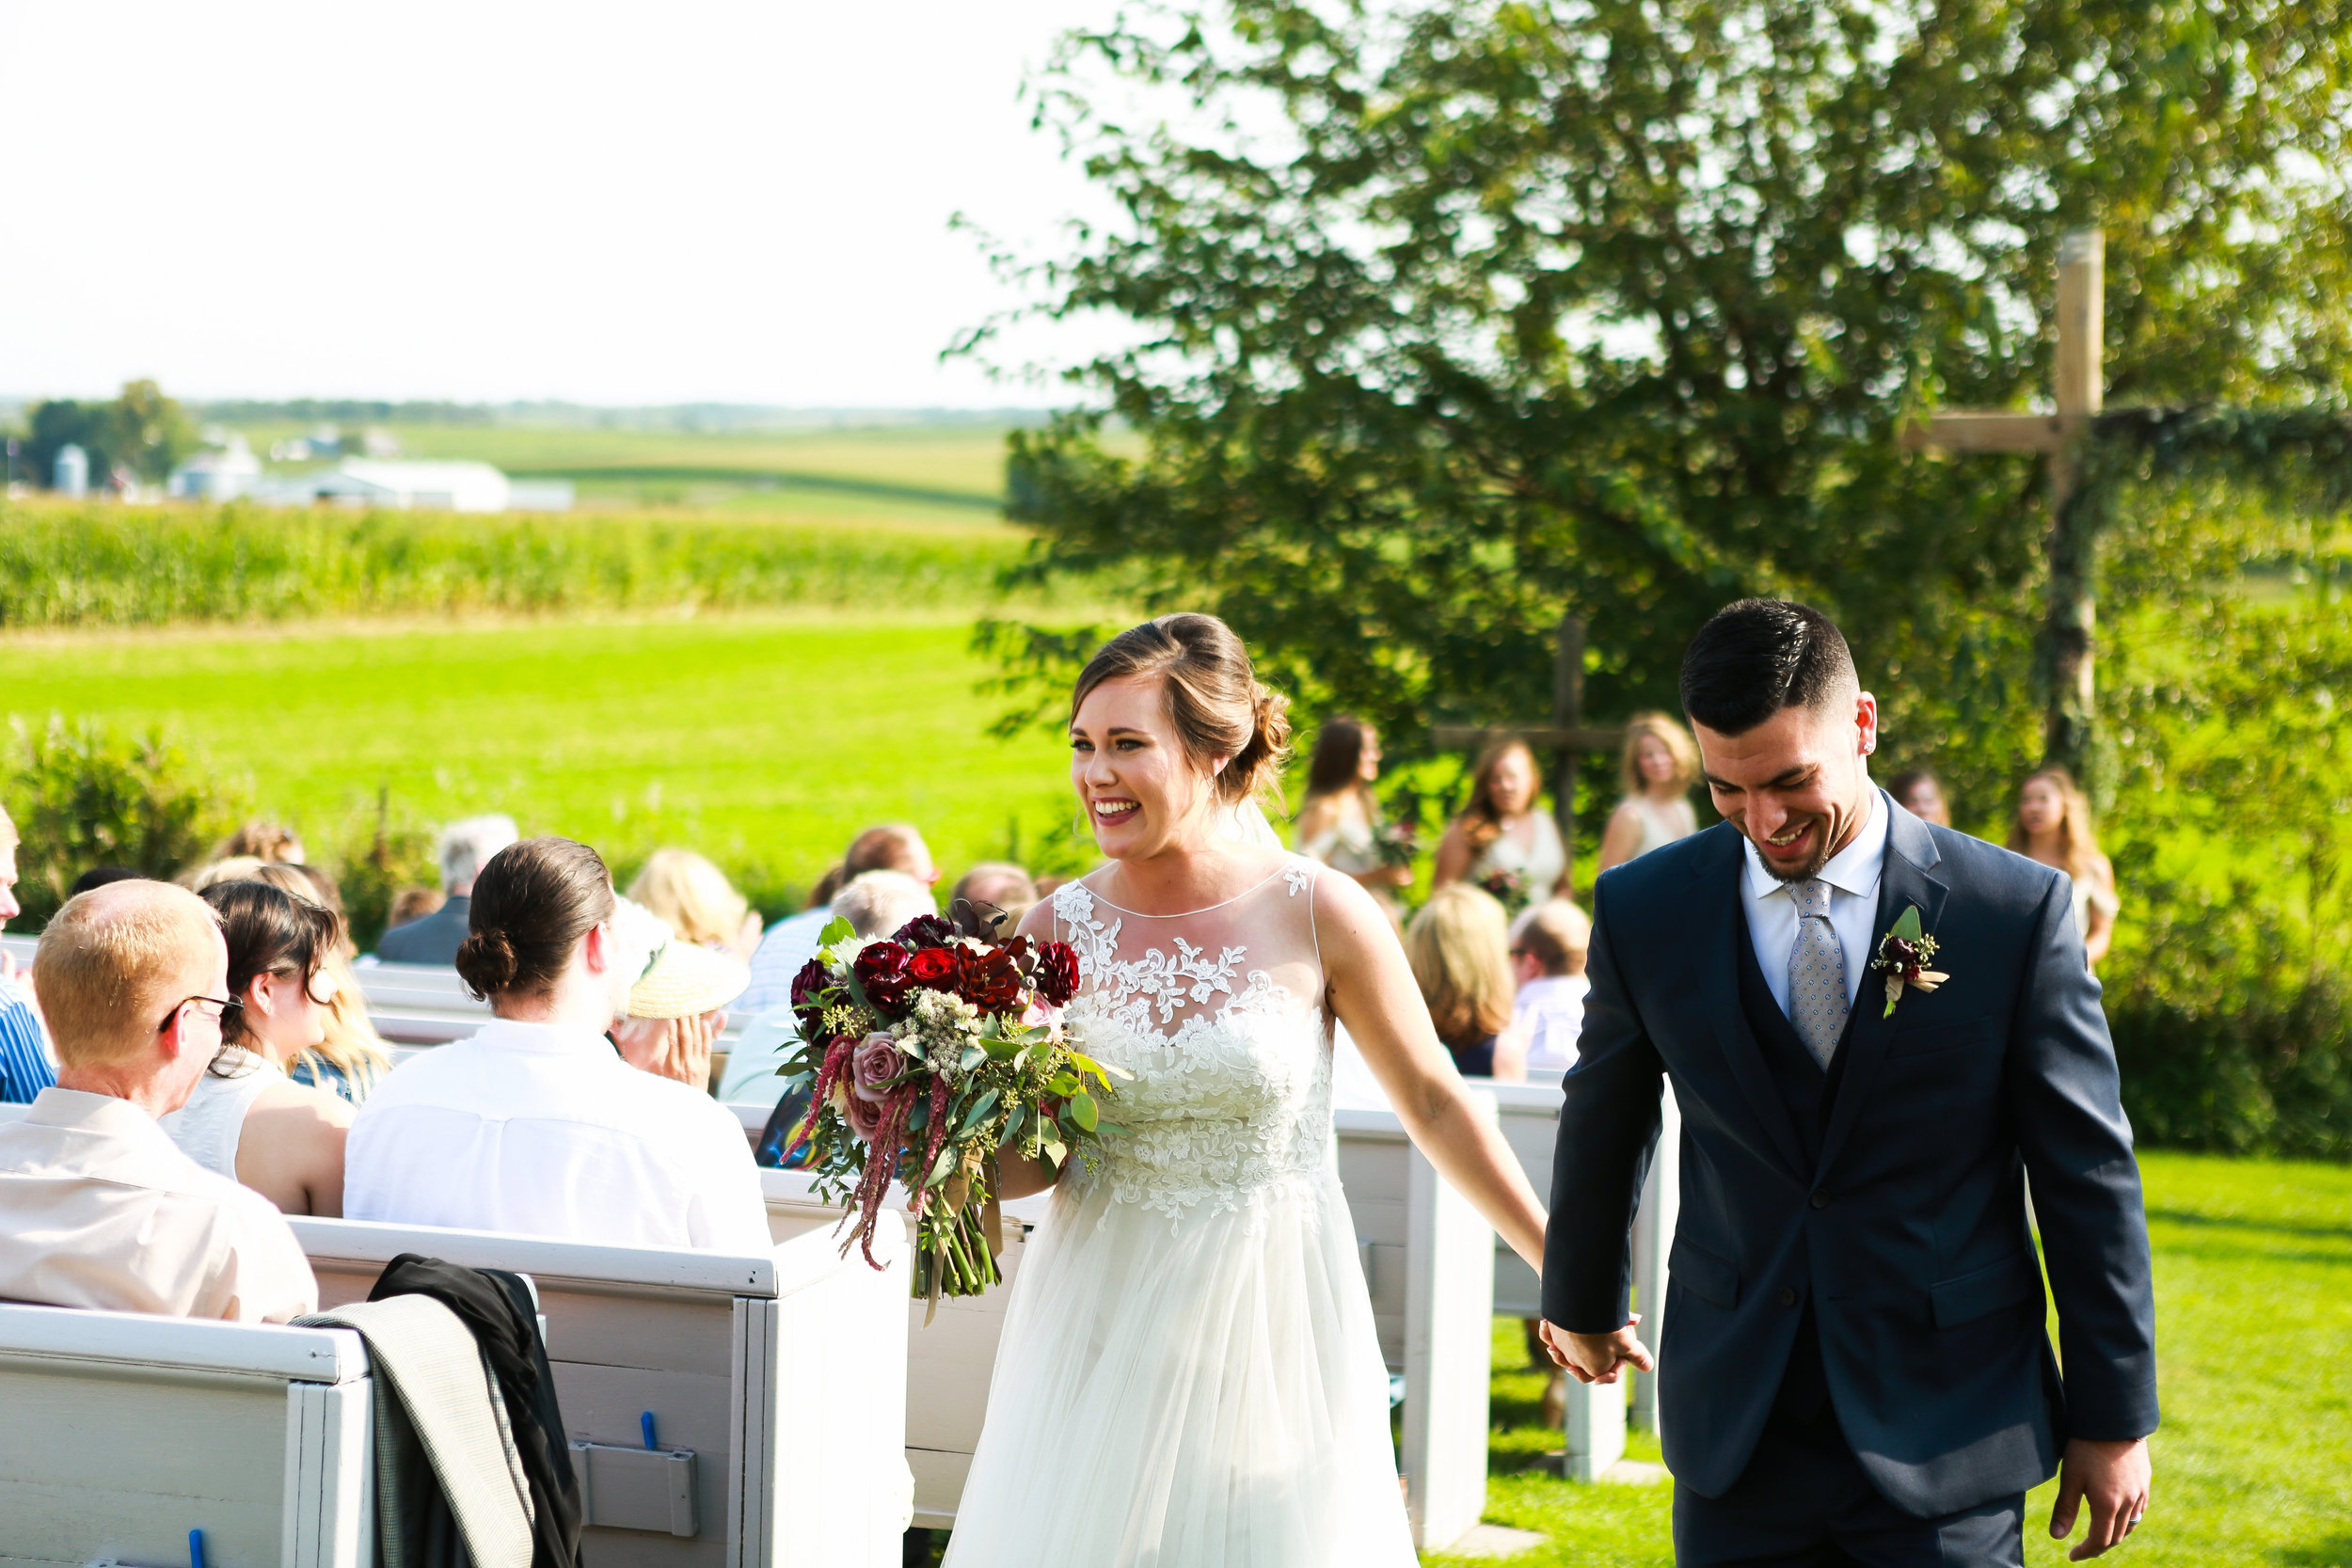 Jenna Kevin Wedding   Sixpence Events day of coordinating   Hannah Schmitt Photography   Legacy Hill Farm   just married recessional